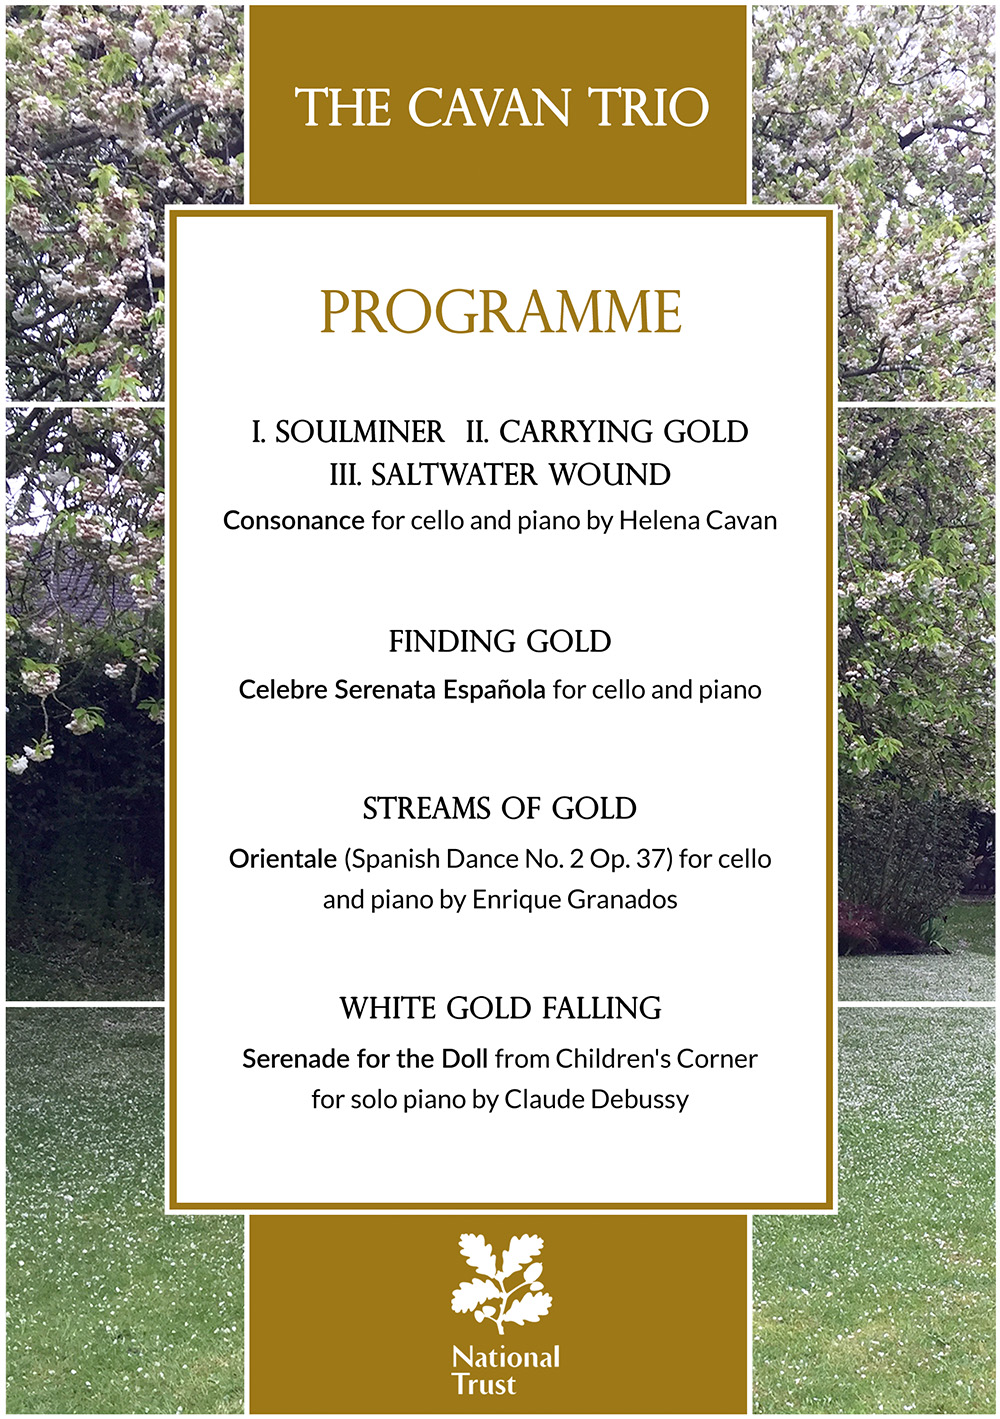 Streams of gold programme 2.jpg